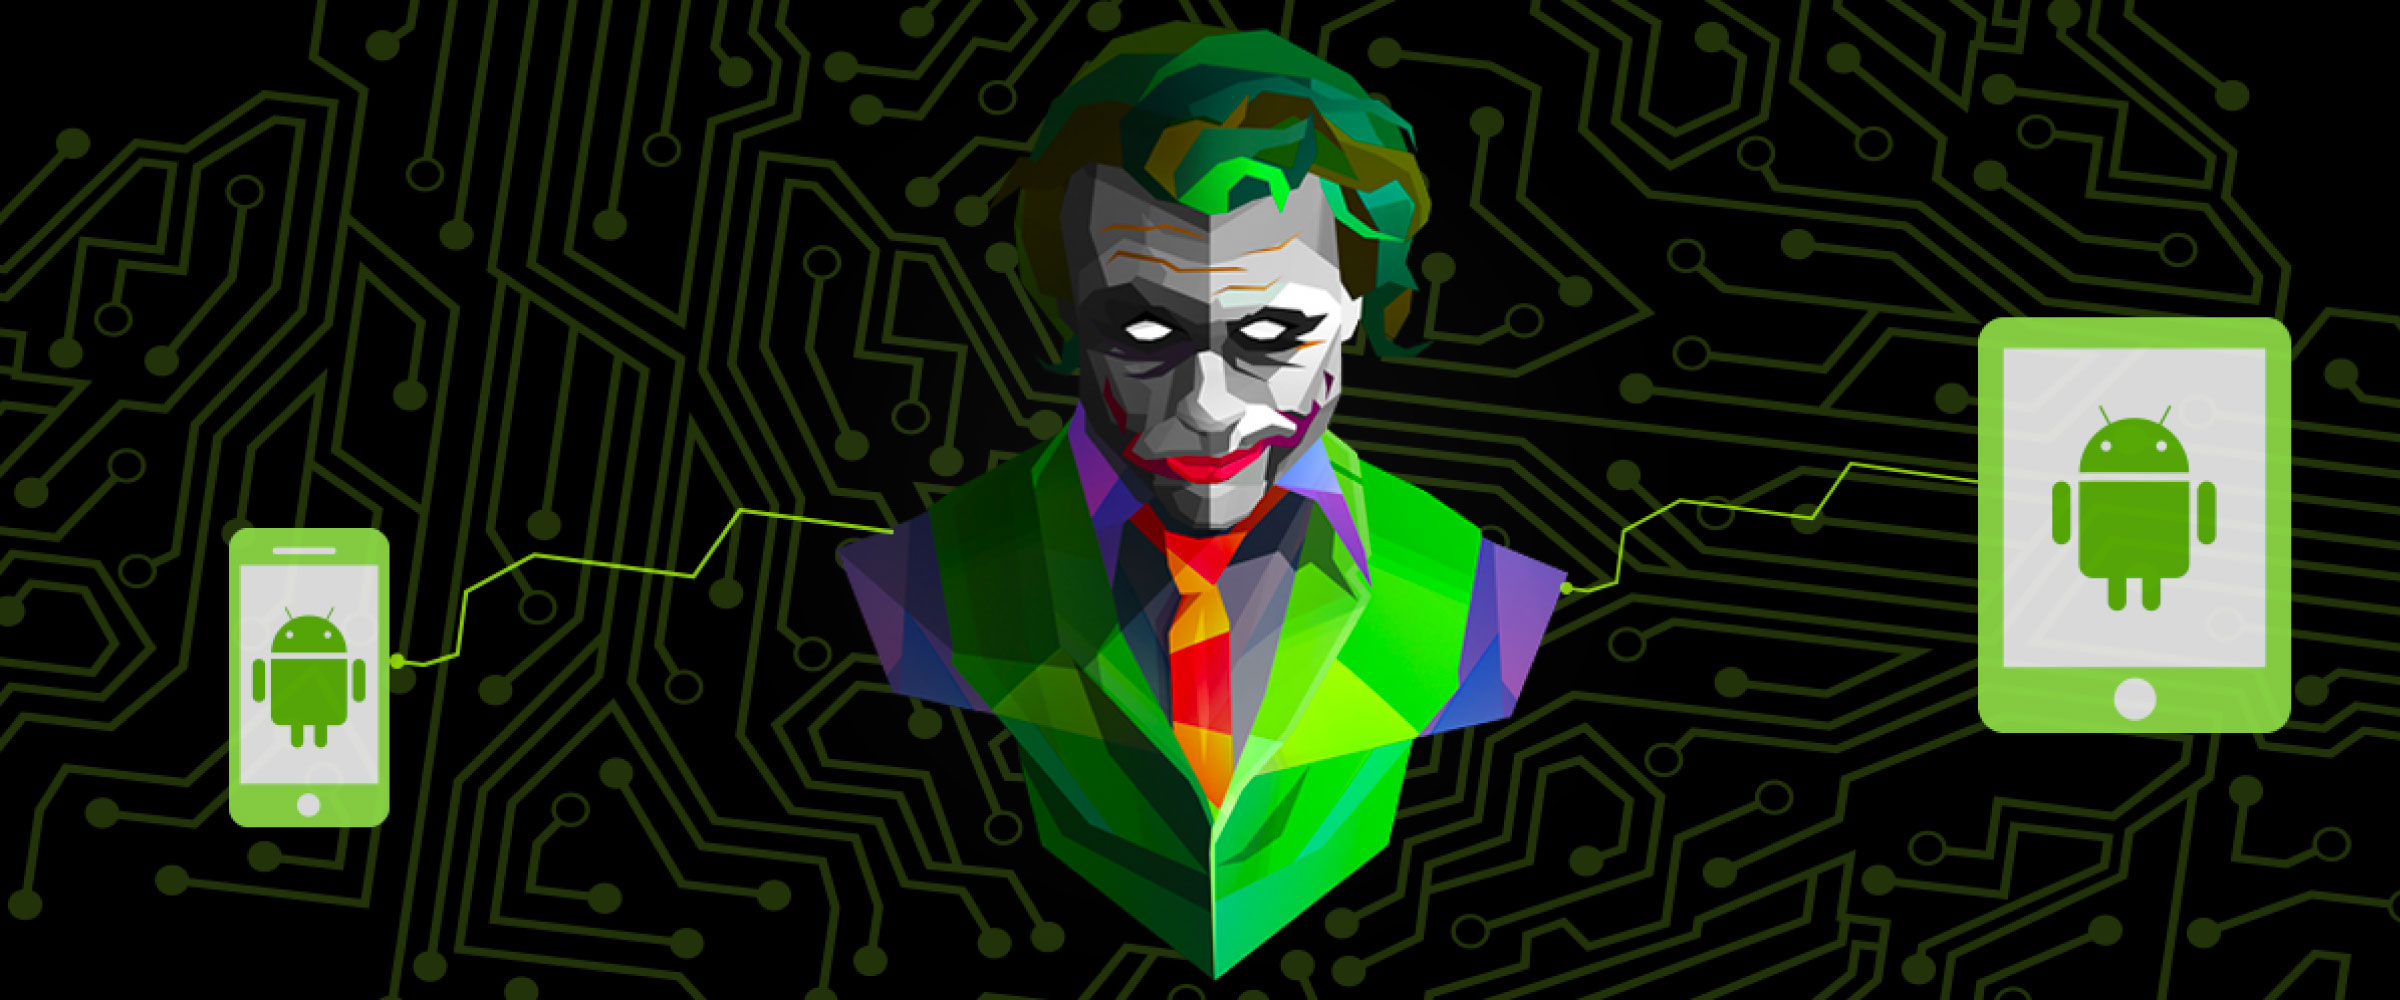 The Joker's in town. Time to secure your Android devices - ManageEngine Blog